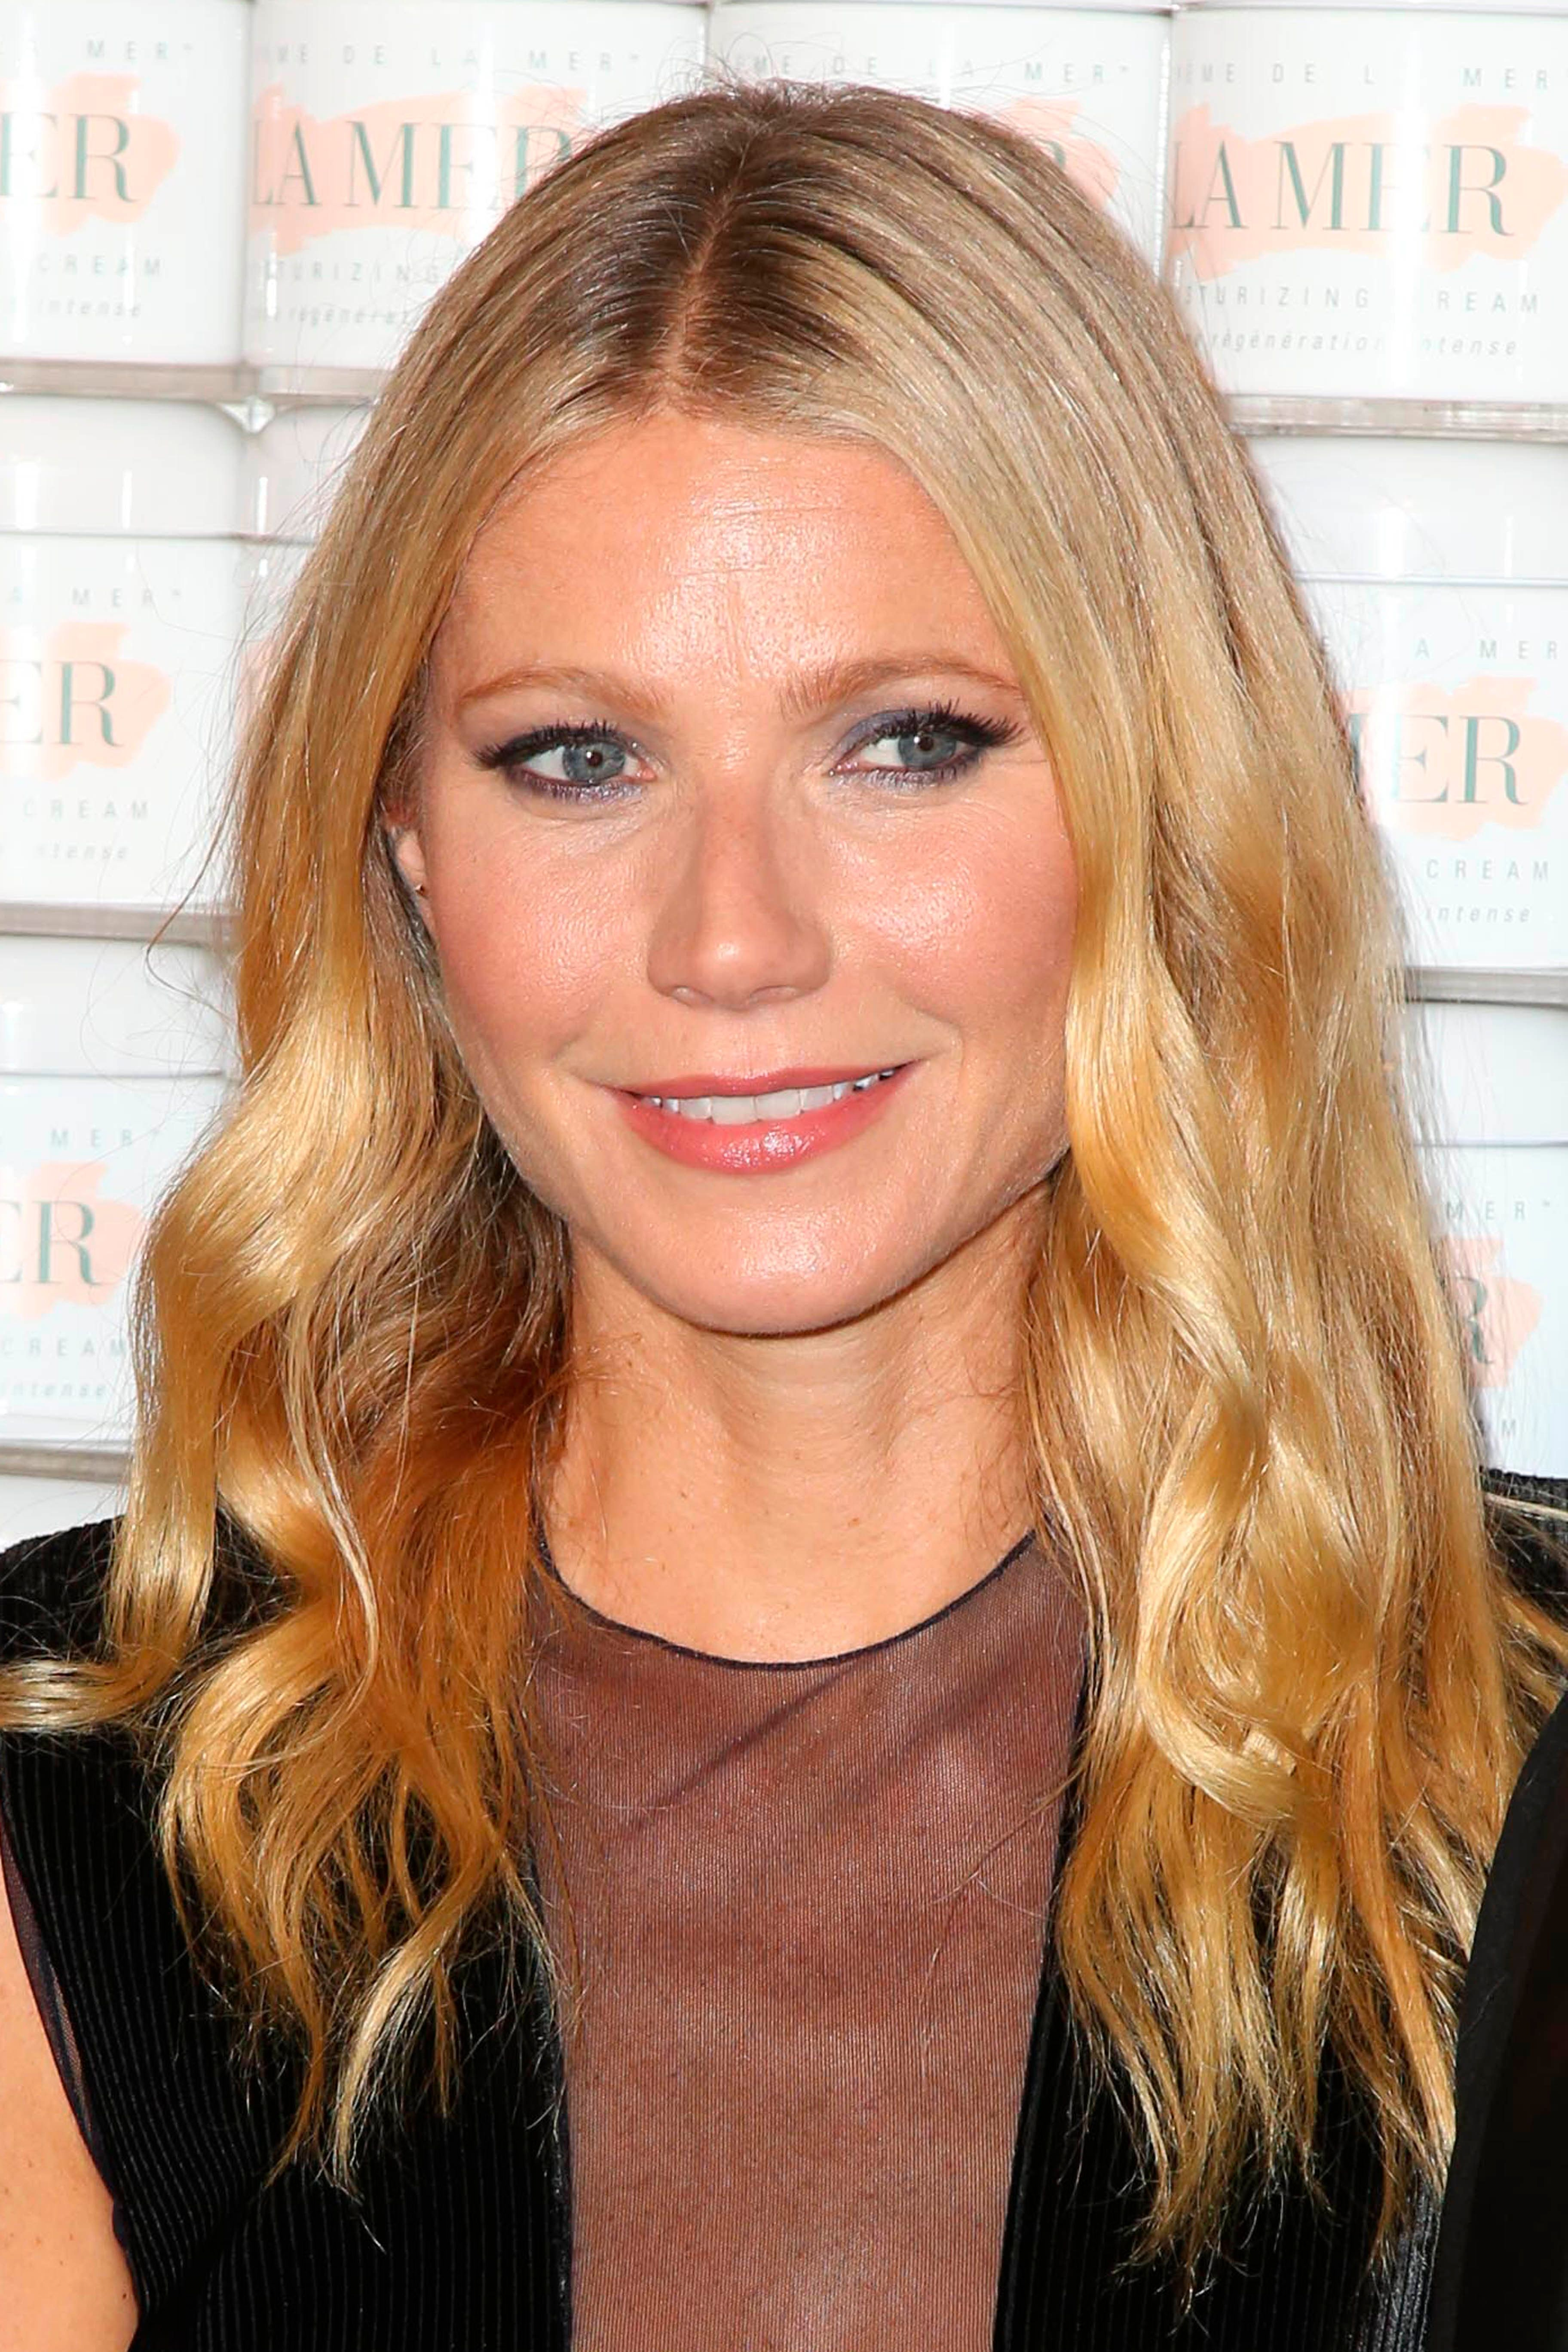 Gwyneth Paltrow Wants To Rebrand The Menopause – Could She Be